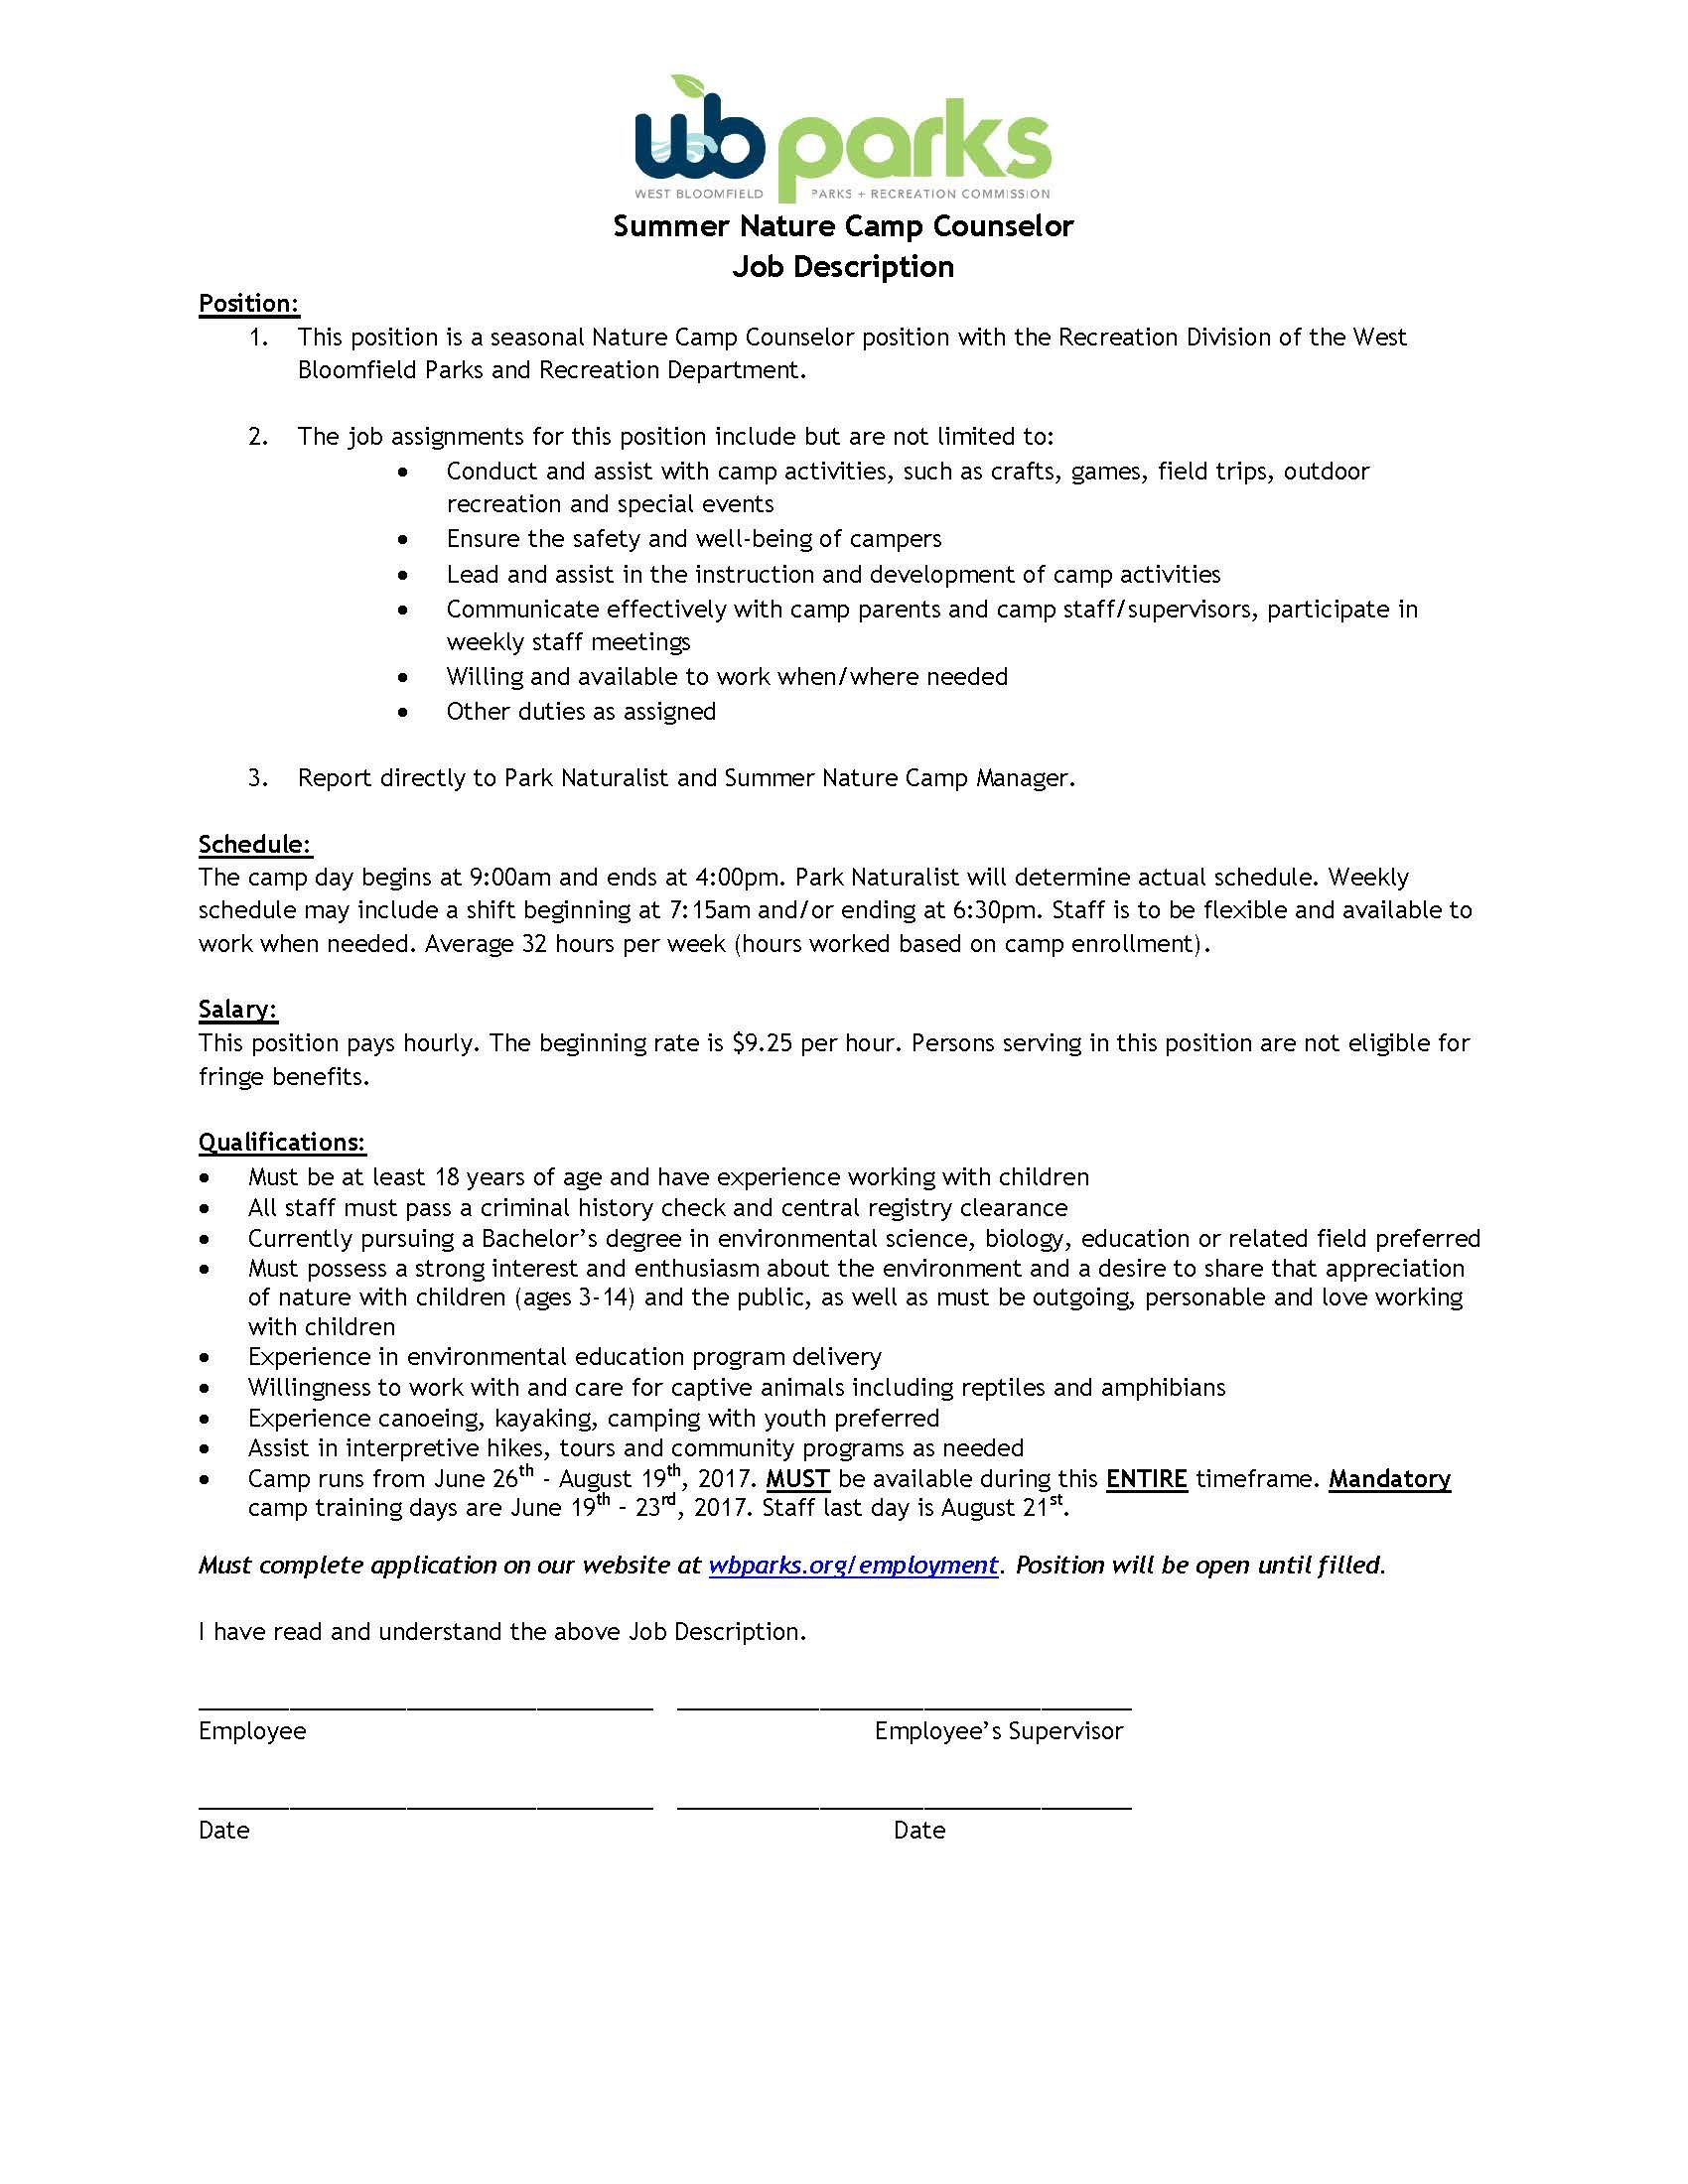 camp supervisor cover letter landscape contractor manager community support worker sample resume summer nature counselor job - Community Support Worker Sample Resume